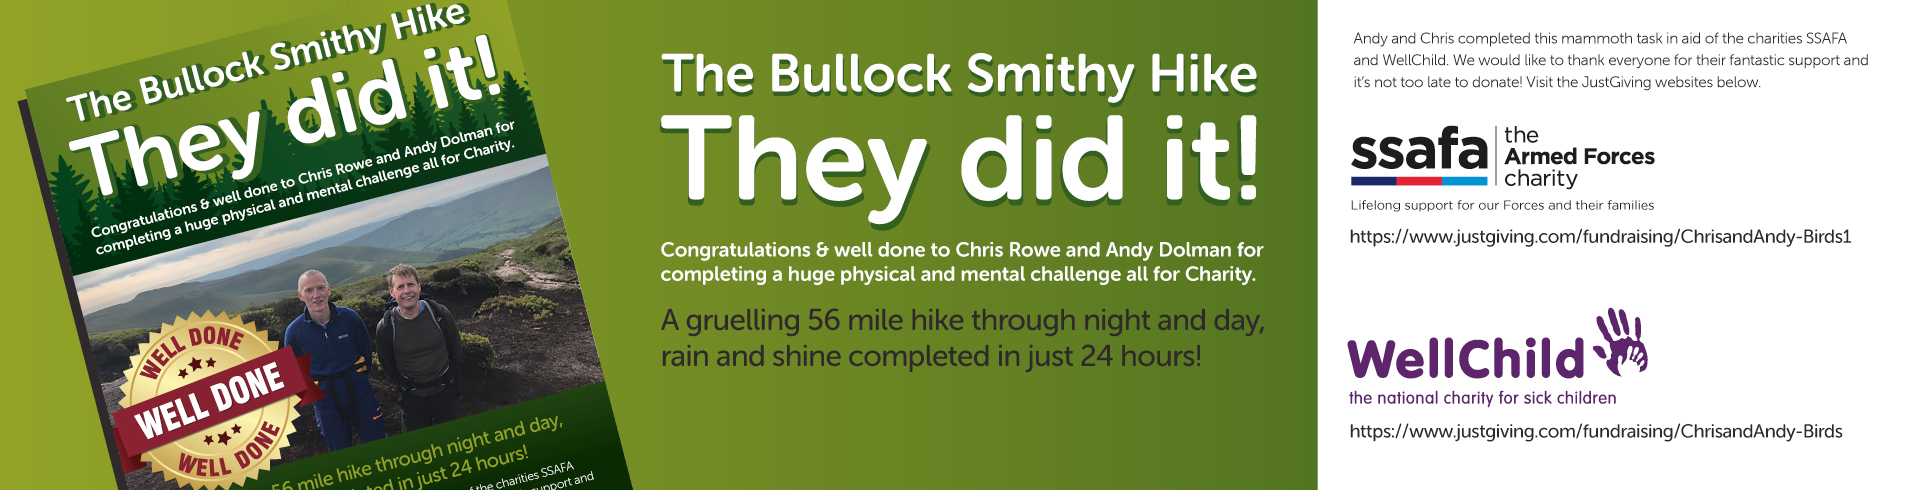 The Bullock Smithy Hike - Chris Rowe and Andy Dolman are going to be undertaking a huge physical and mental challenge. Both are donning their walking boots in aid of the charities SSAFA and WellChild